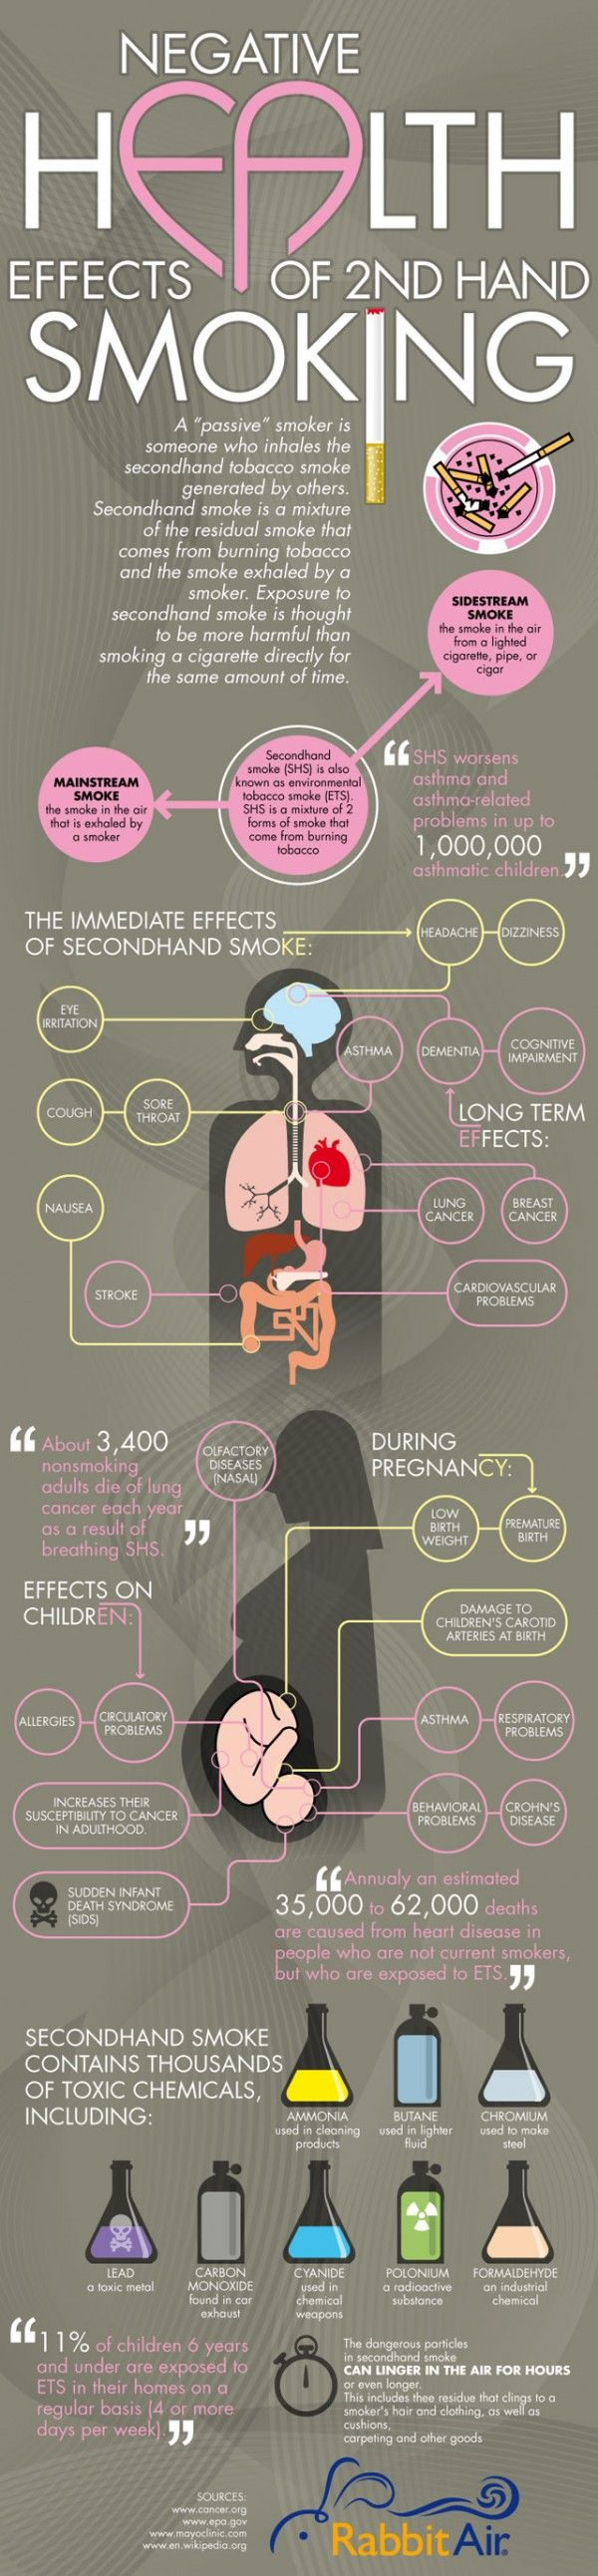 Negative Health Effects of Second Hand #Smoking is bad for many reasons but this infographic shows the negative effects of second hand smoking. Be sure to check this out if you or someone in your life smokes.